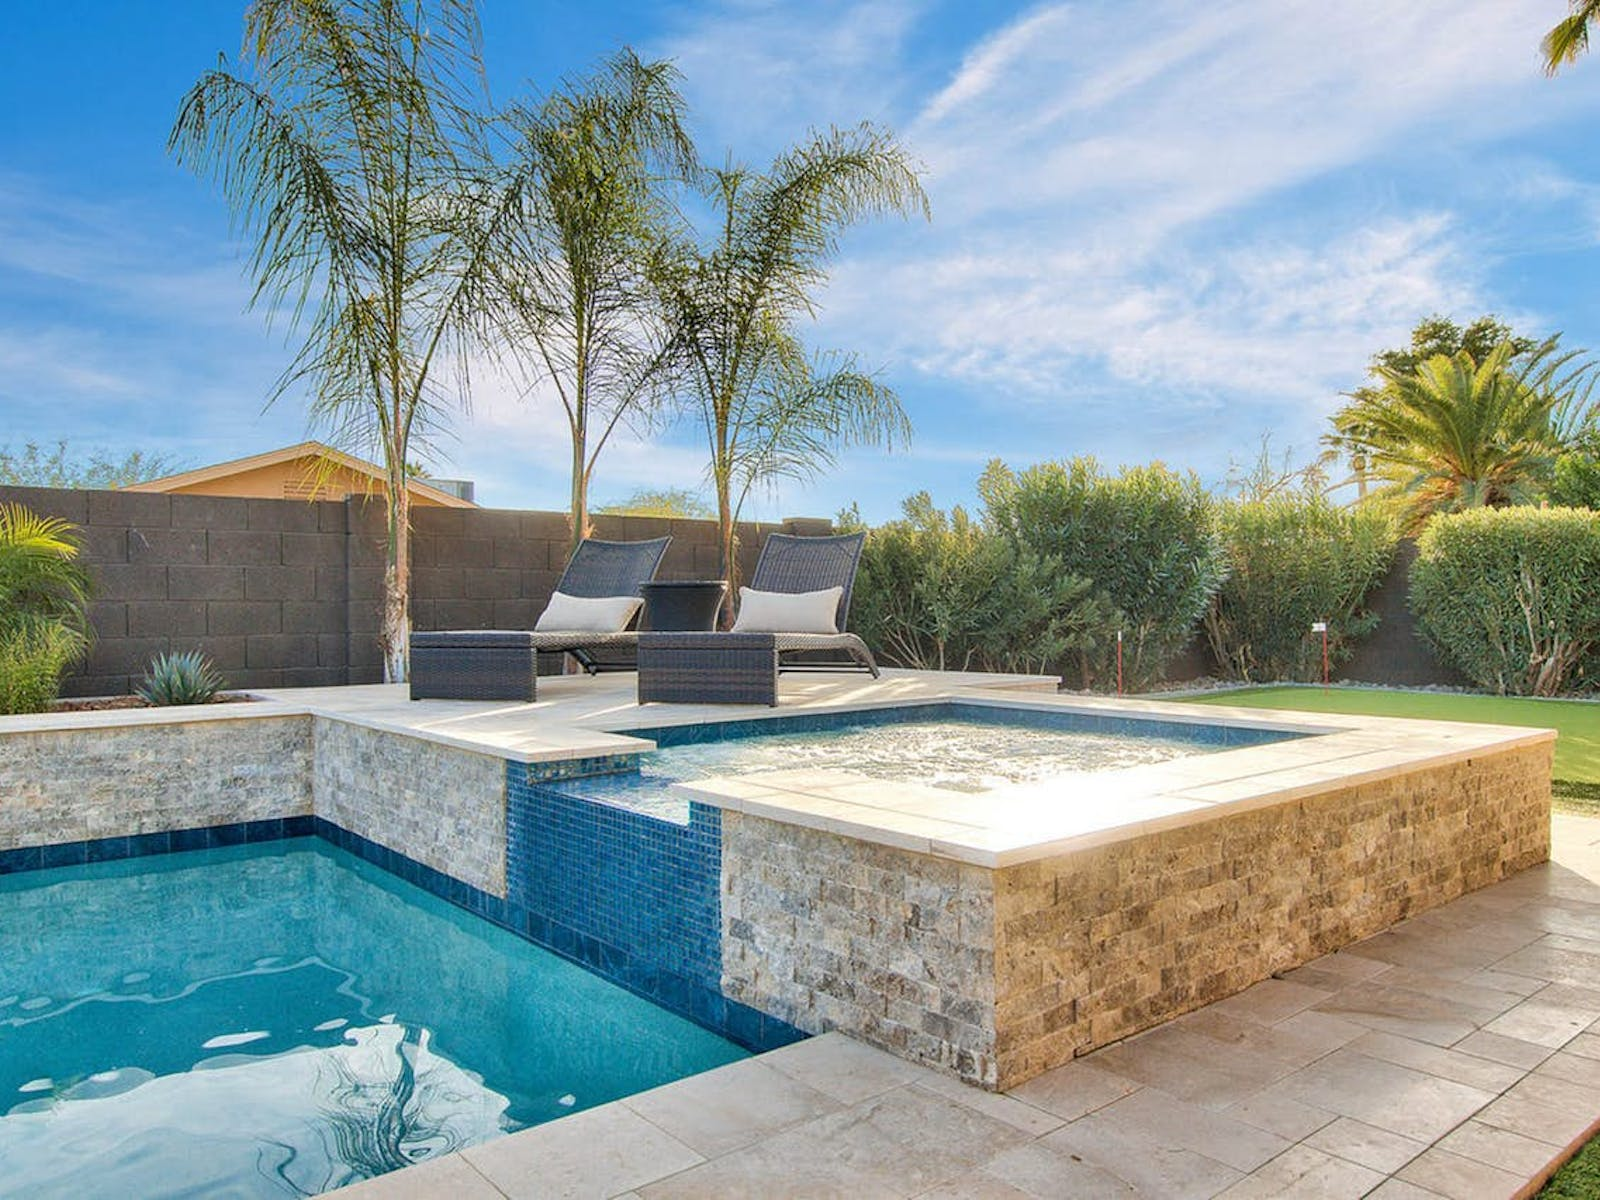 Private hot tub of vacation rental in Scottsdale, AZ